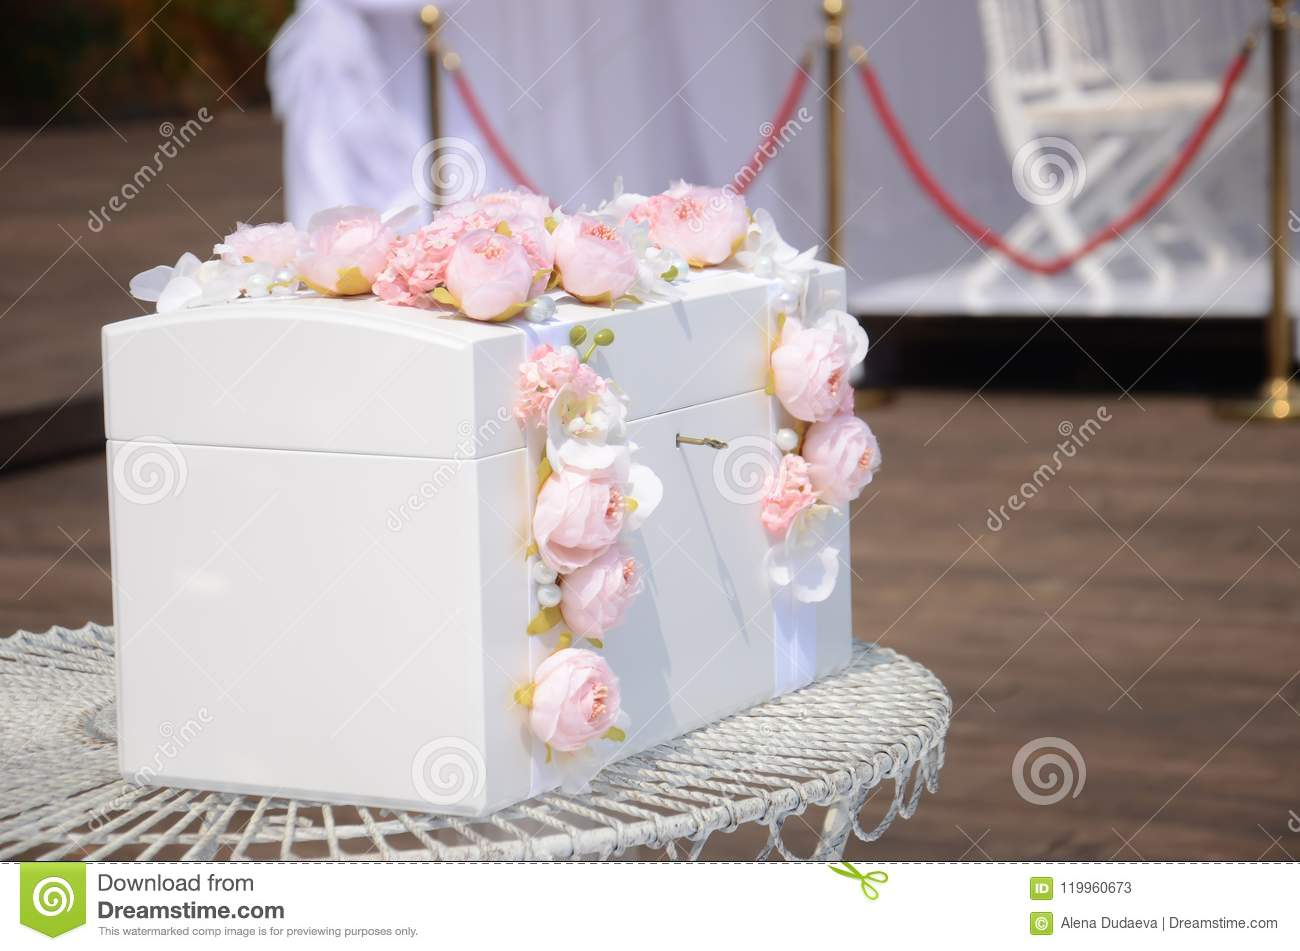 Casket For A Wedding For Gifts Stock Image Image Of Value Flower